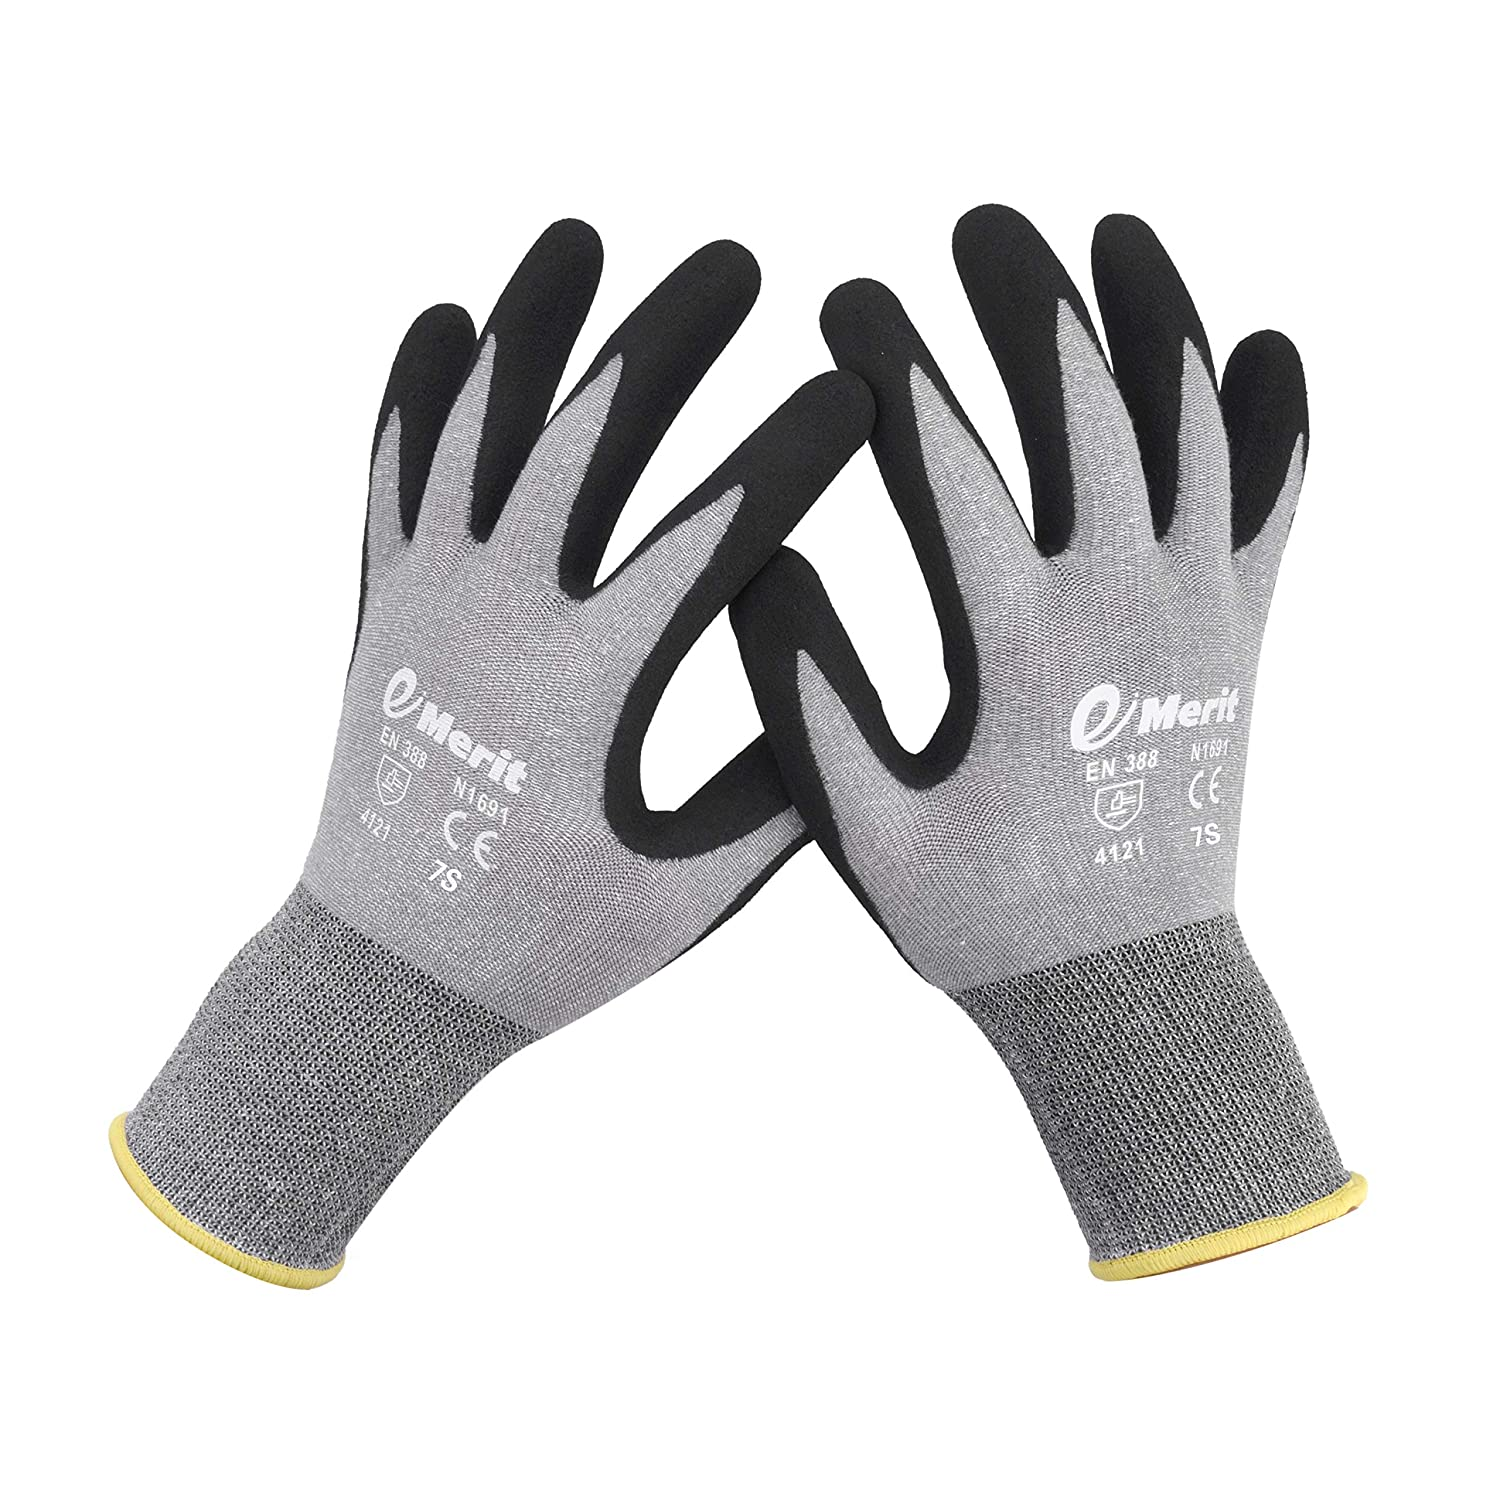 Construction Sandy Nitrile Coated Small,6 Pack eMerit Bamboo Gardening Gloves for Women,Men Outdoor Gloves for Working